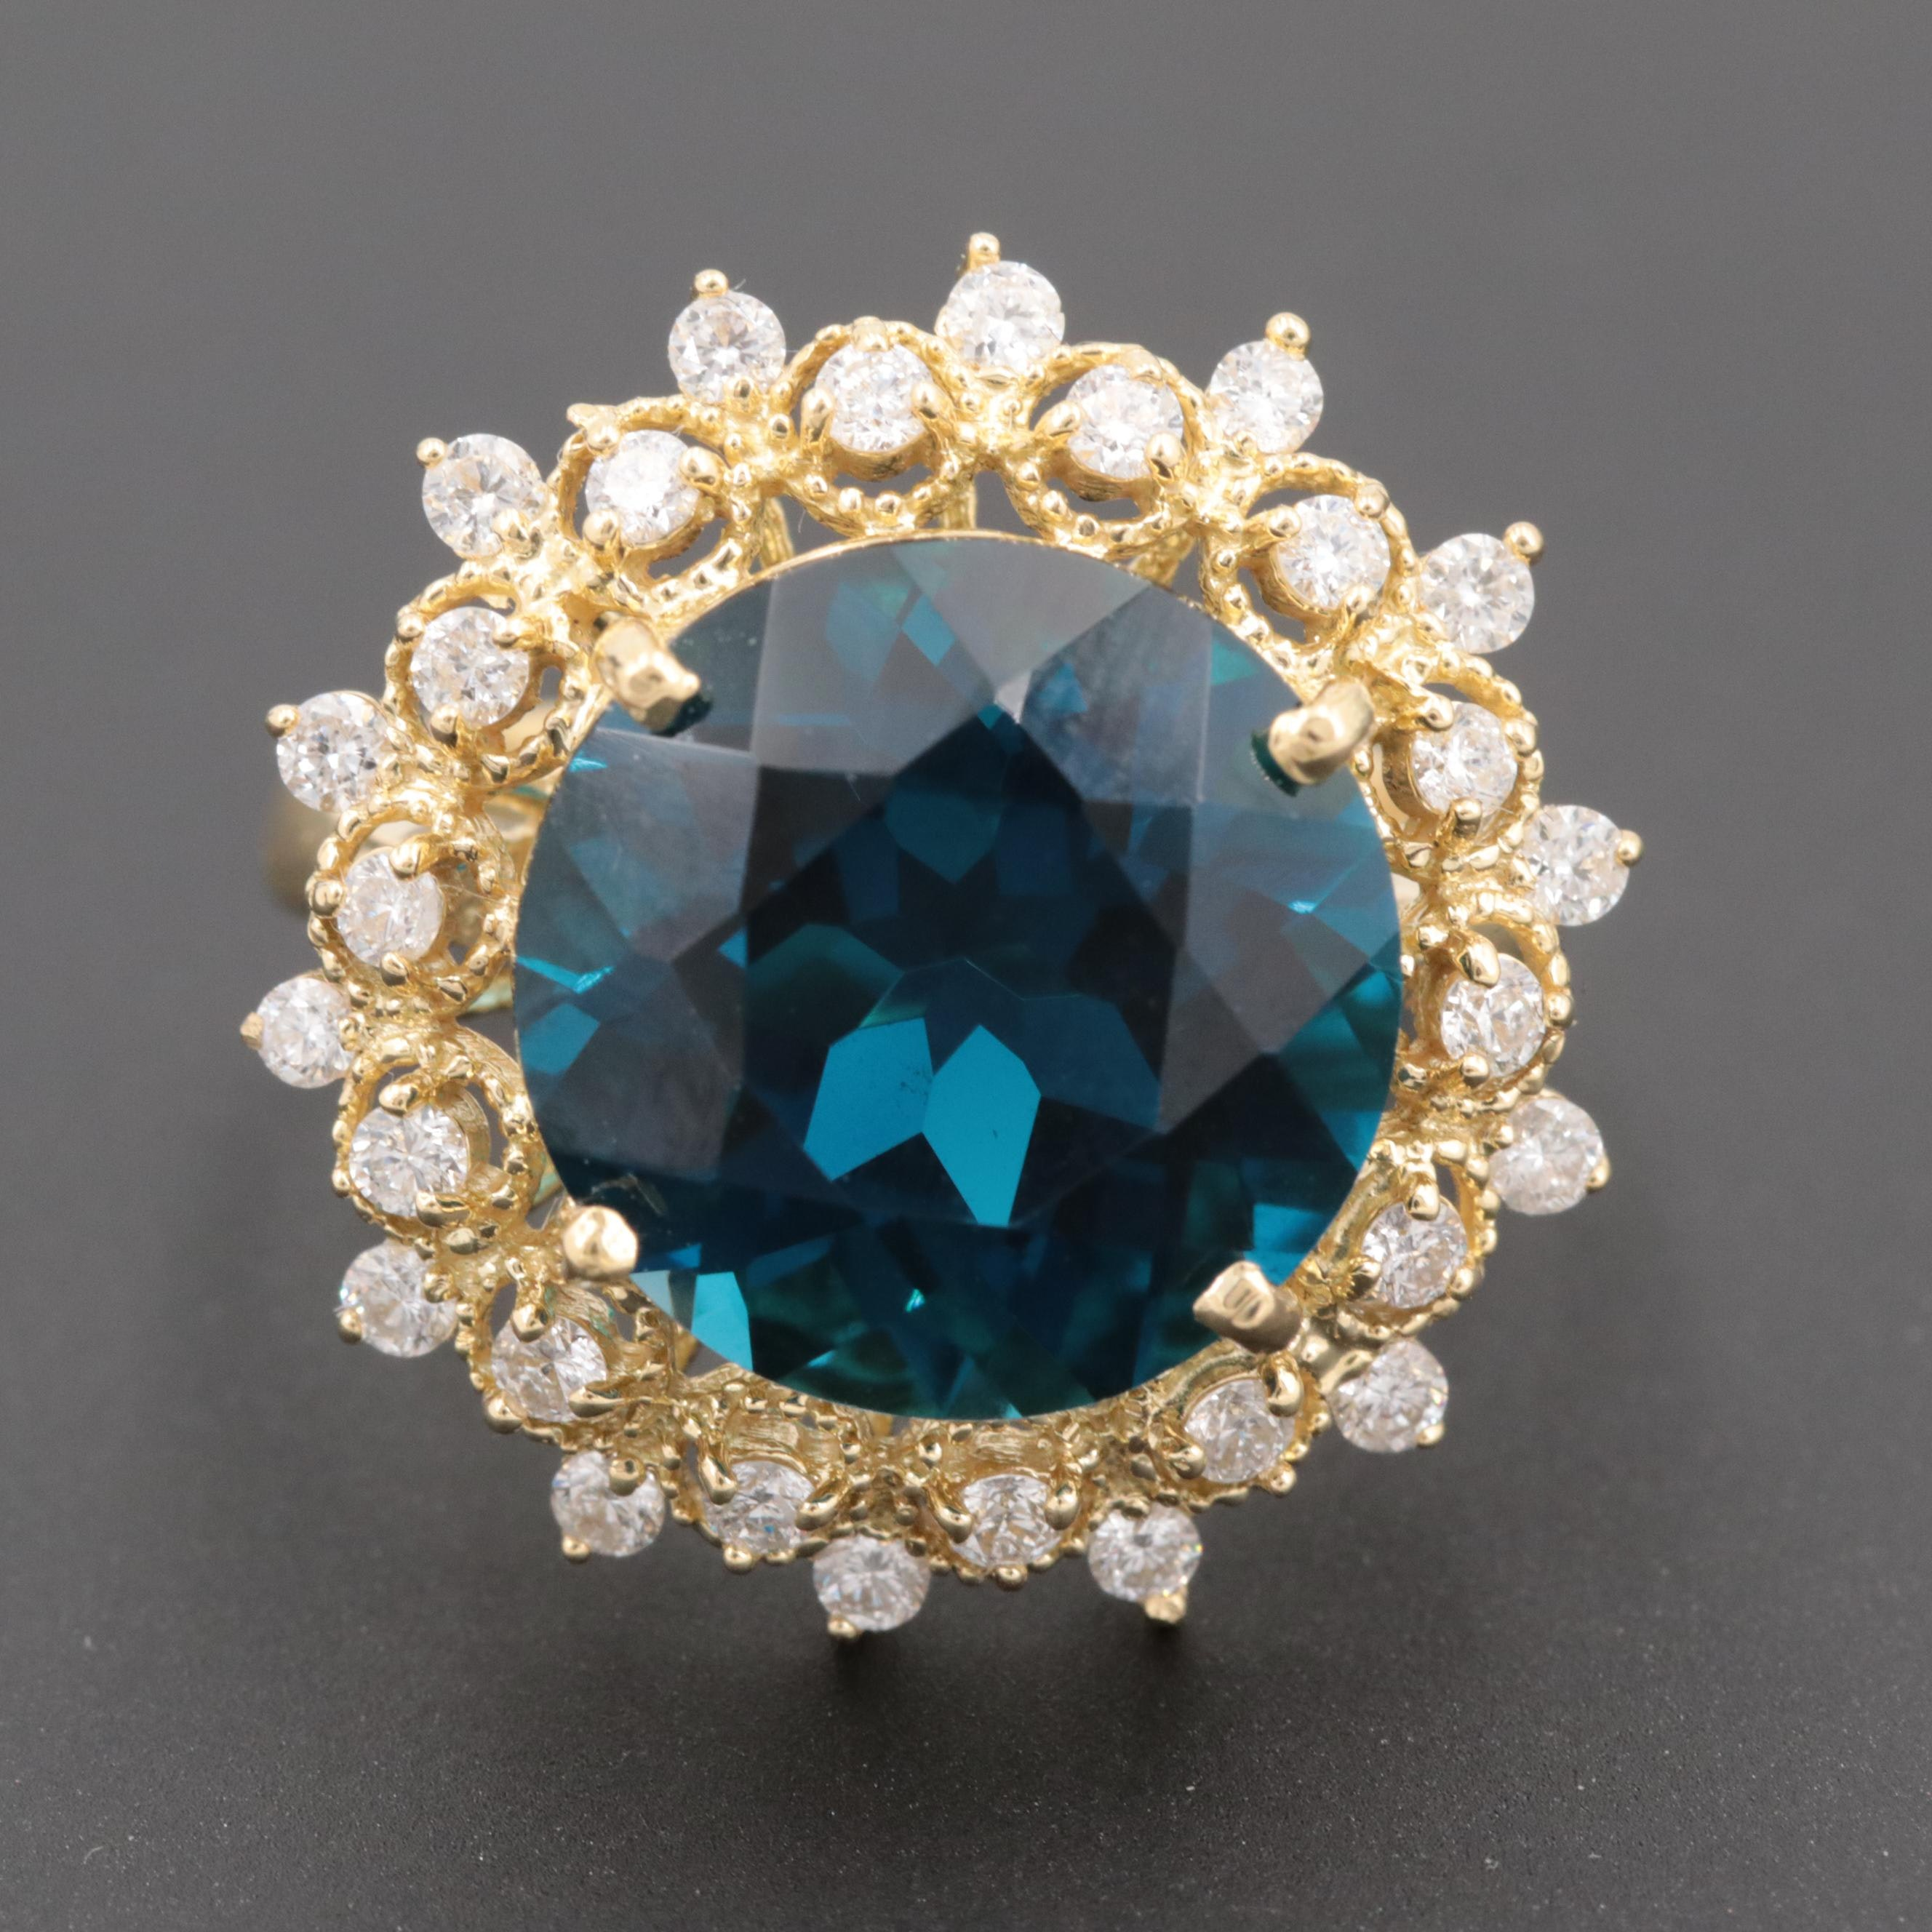 18K Yellow Gold 9.80 CT Topaz and Diamond Ring